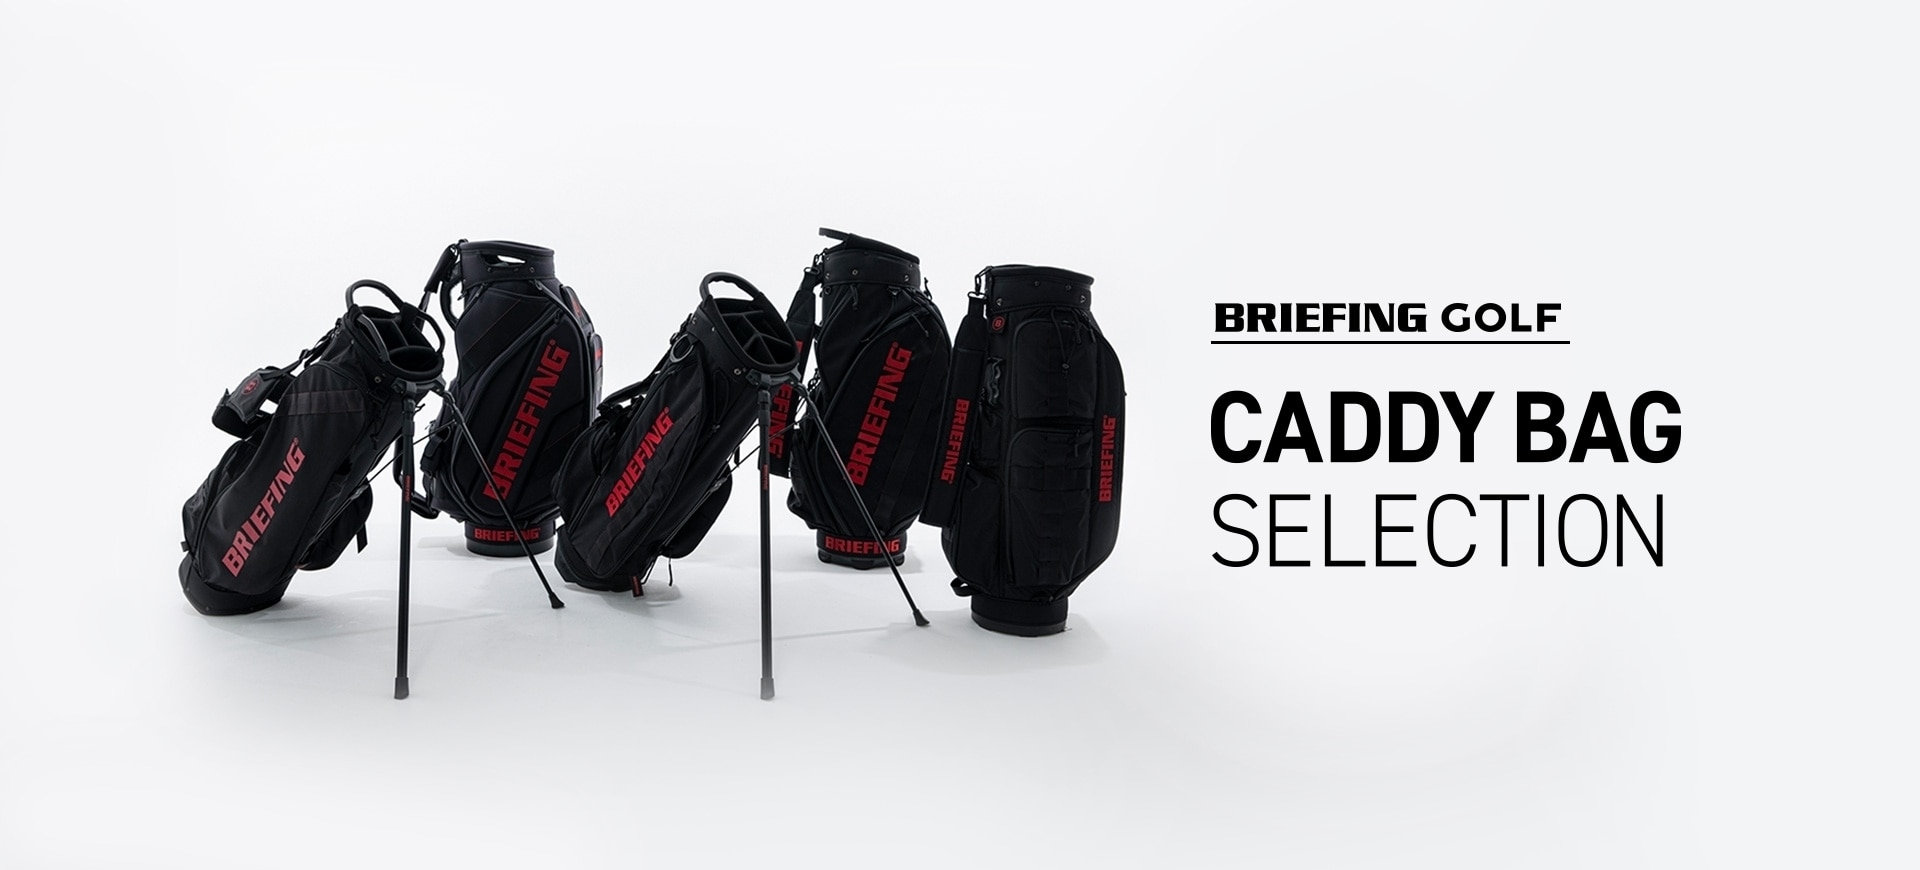 CADDYBAG SELECTION